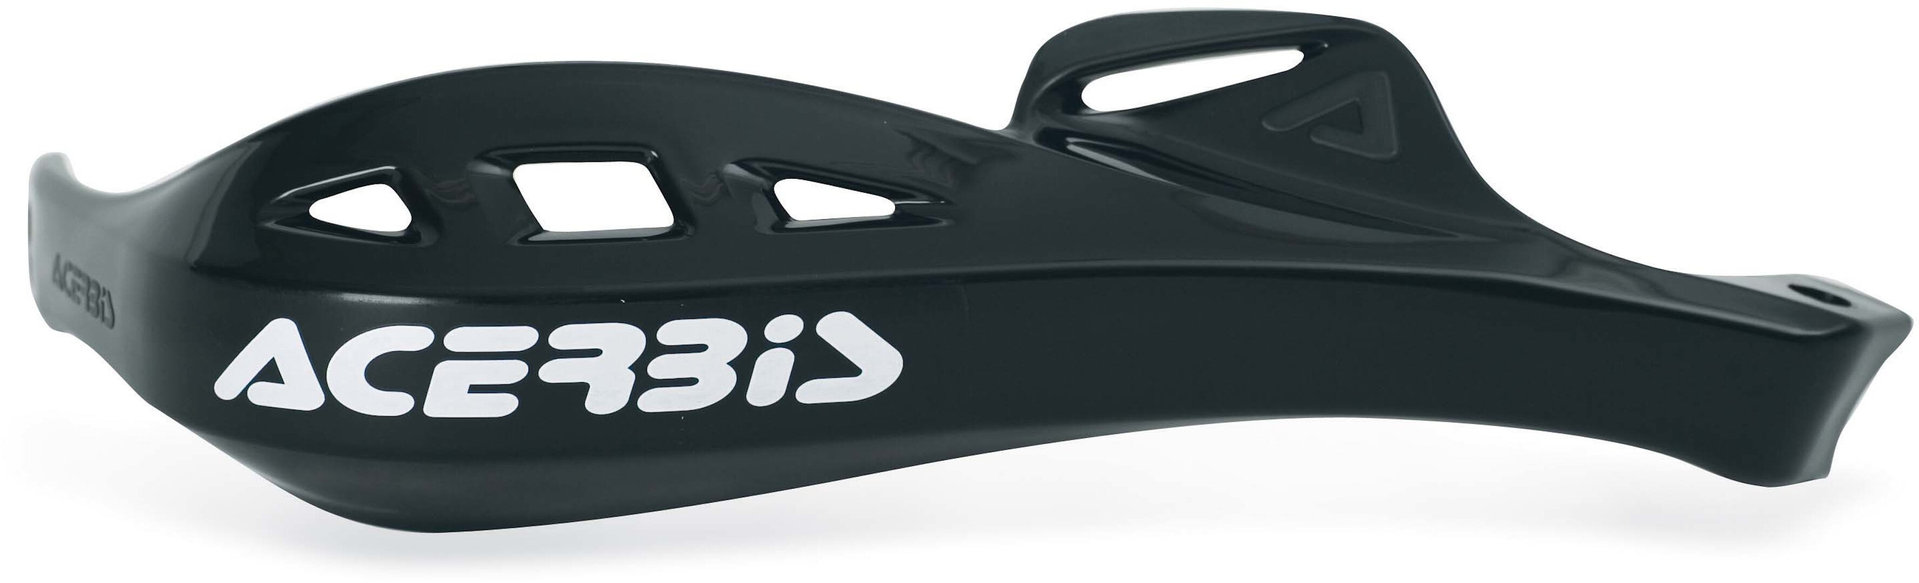 Acerbis Rally Profile Hand Guard Shell, black, black, Size One Size from Acerbis